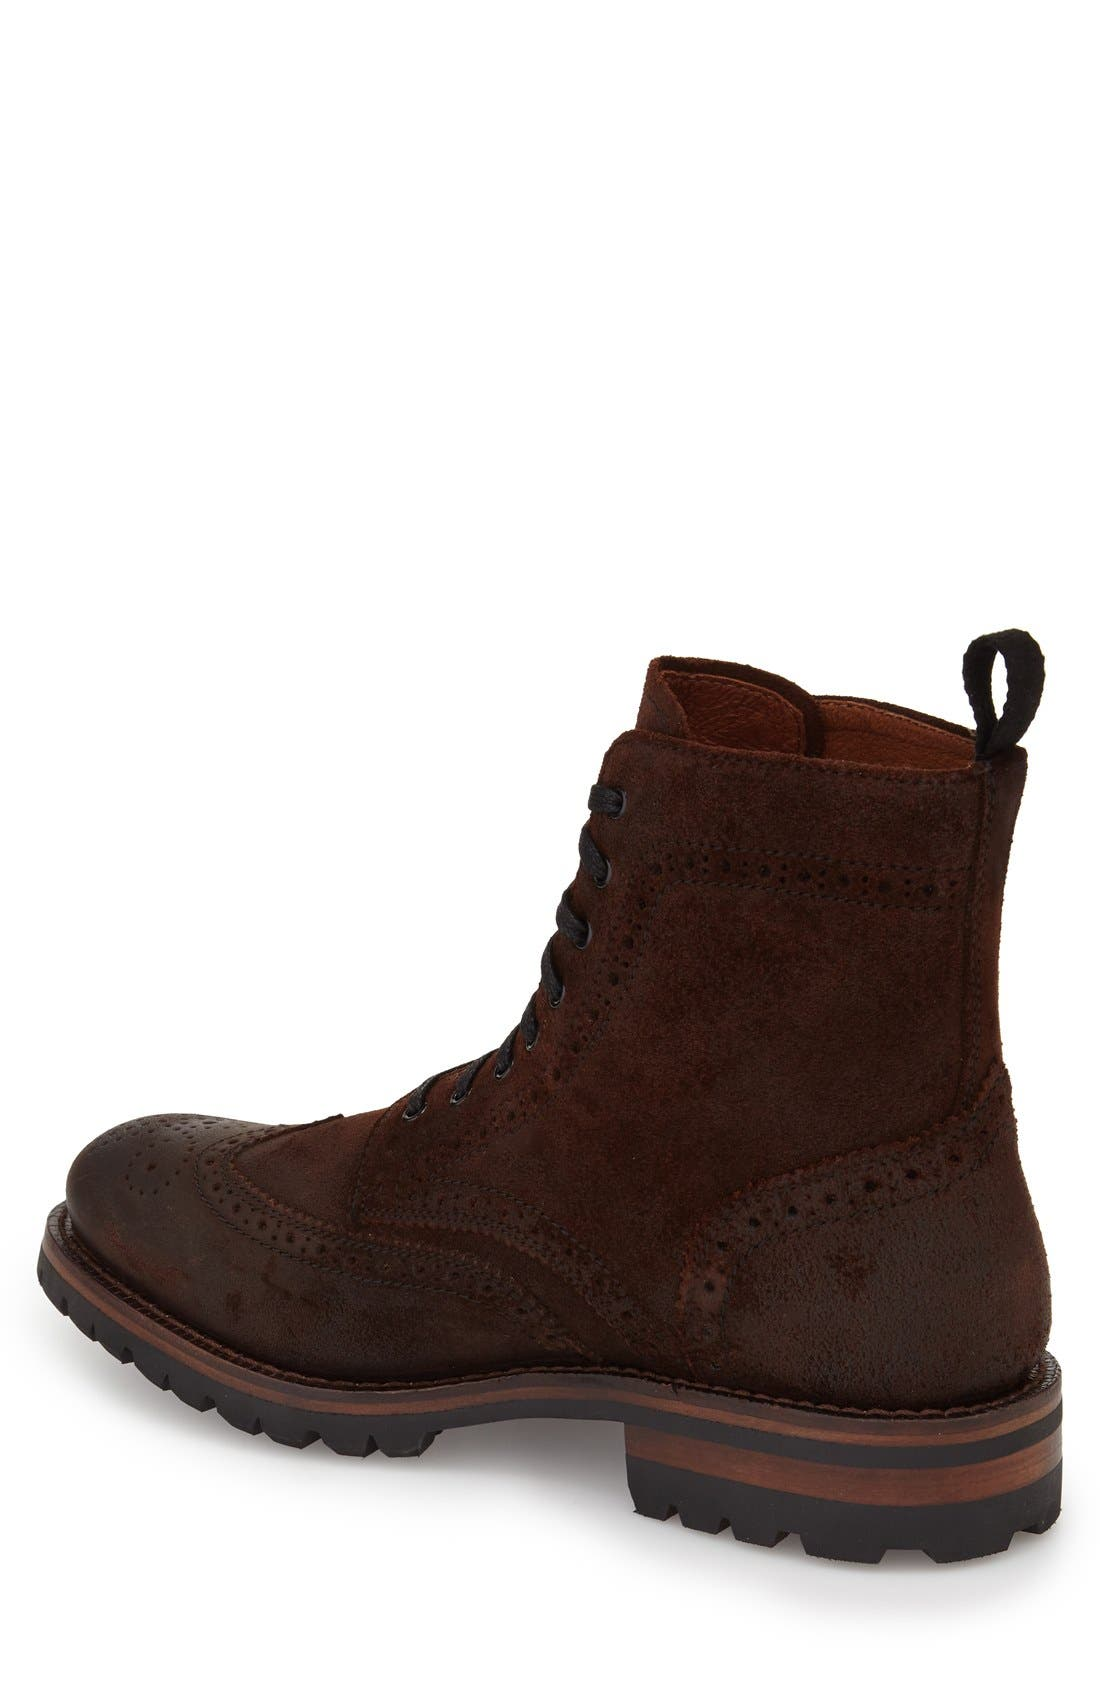 George Wingtip Boot,                             Alternate thumbnail 2, color,                             230